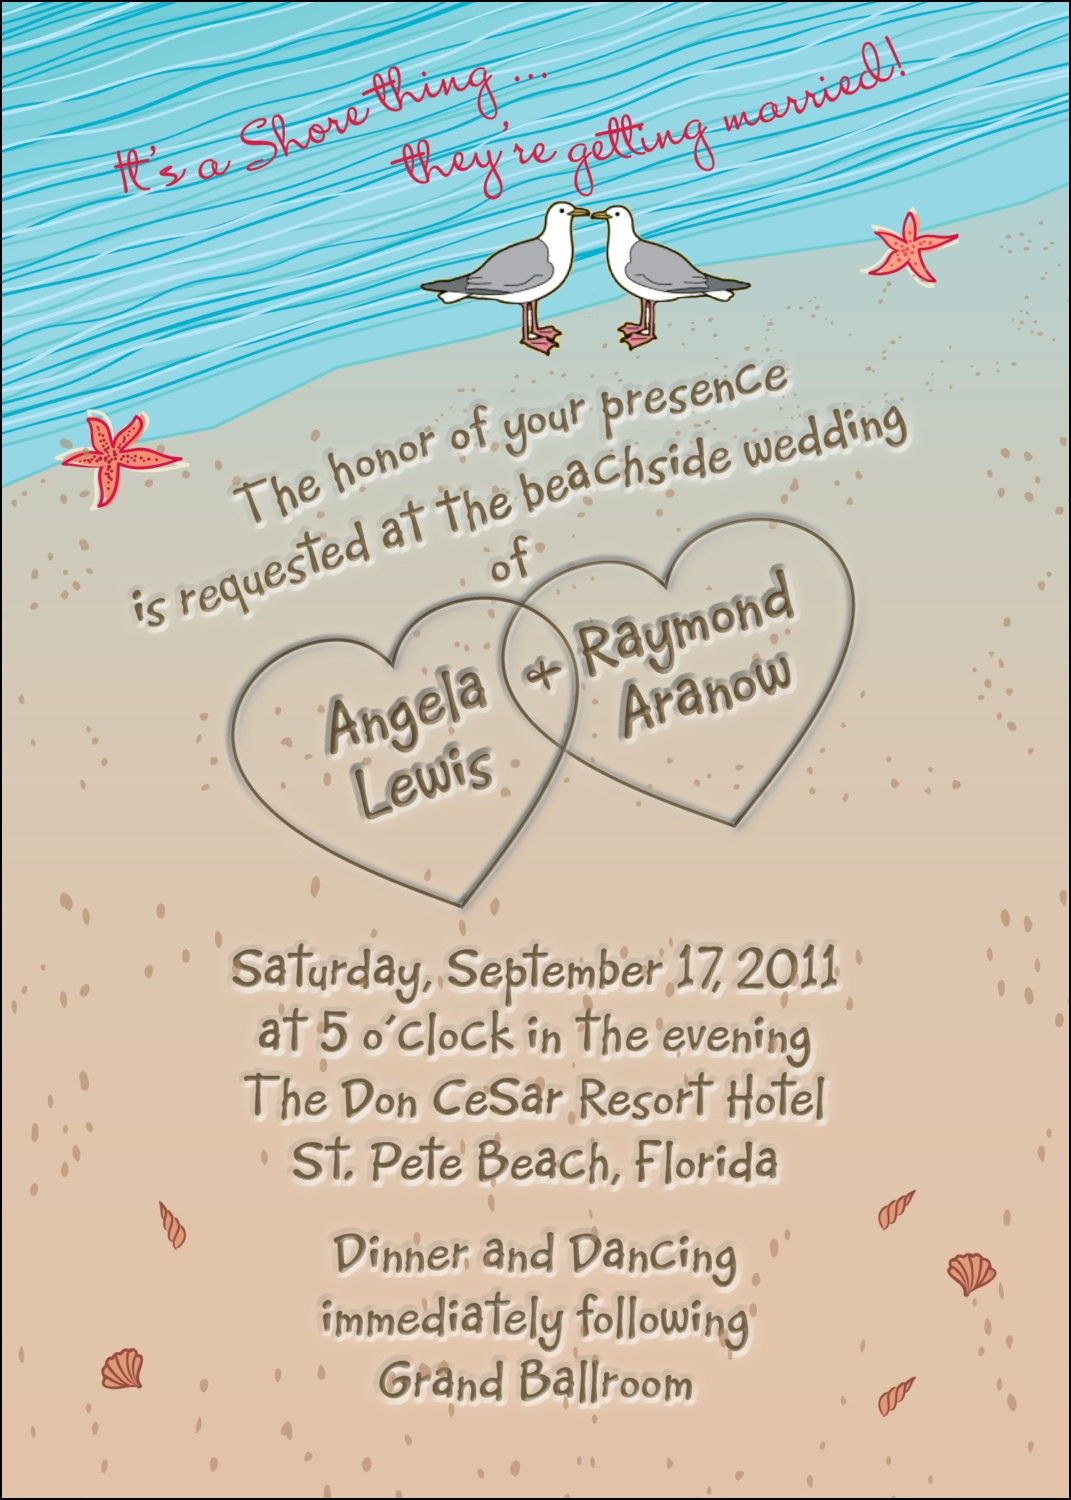 Wedding invitation wording to invite friends dibujos pinterest wedding invitation wording to invite friends stopboris Image collections